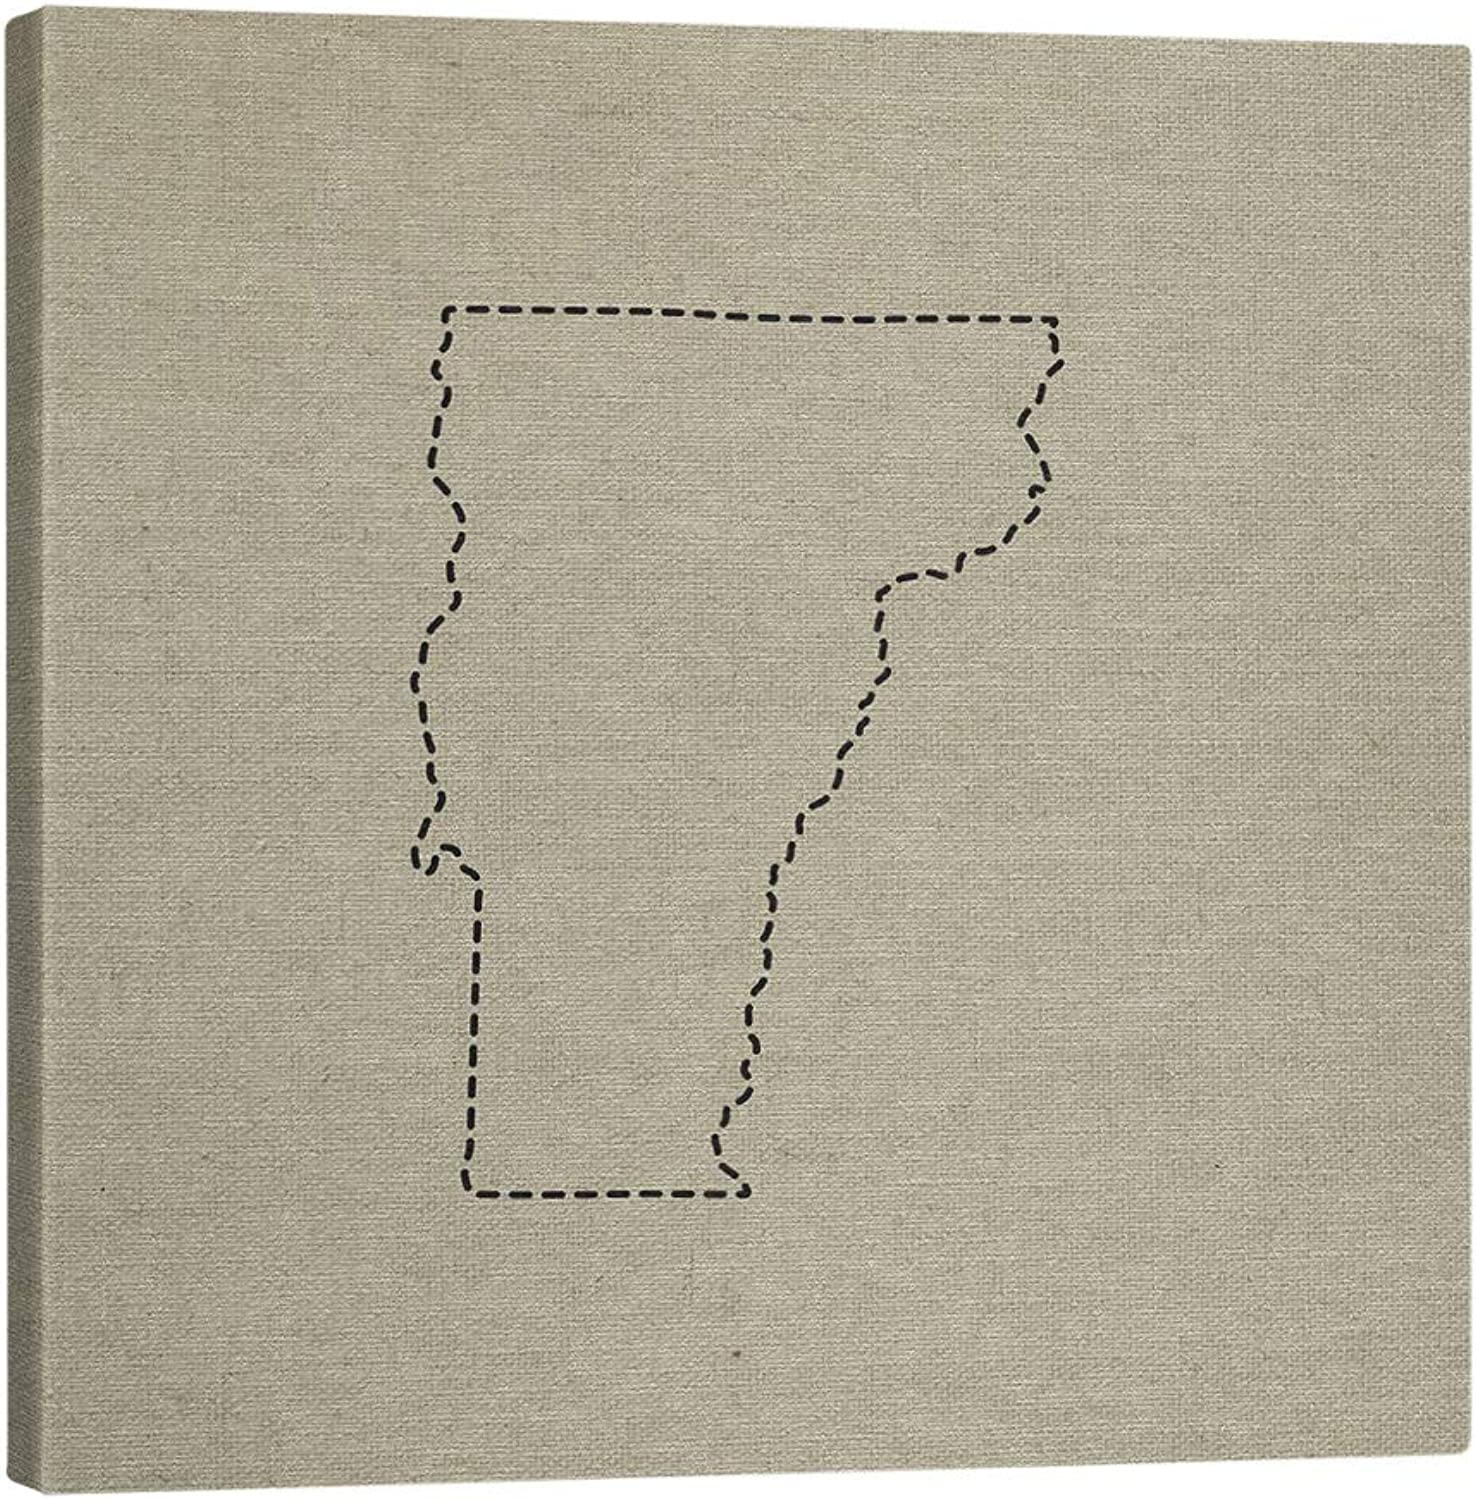 ArtVerse SMI412-MCS-1212 Smith Semi Gloss Canvas Stretched 12 X 12 State Outline